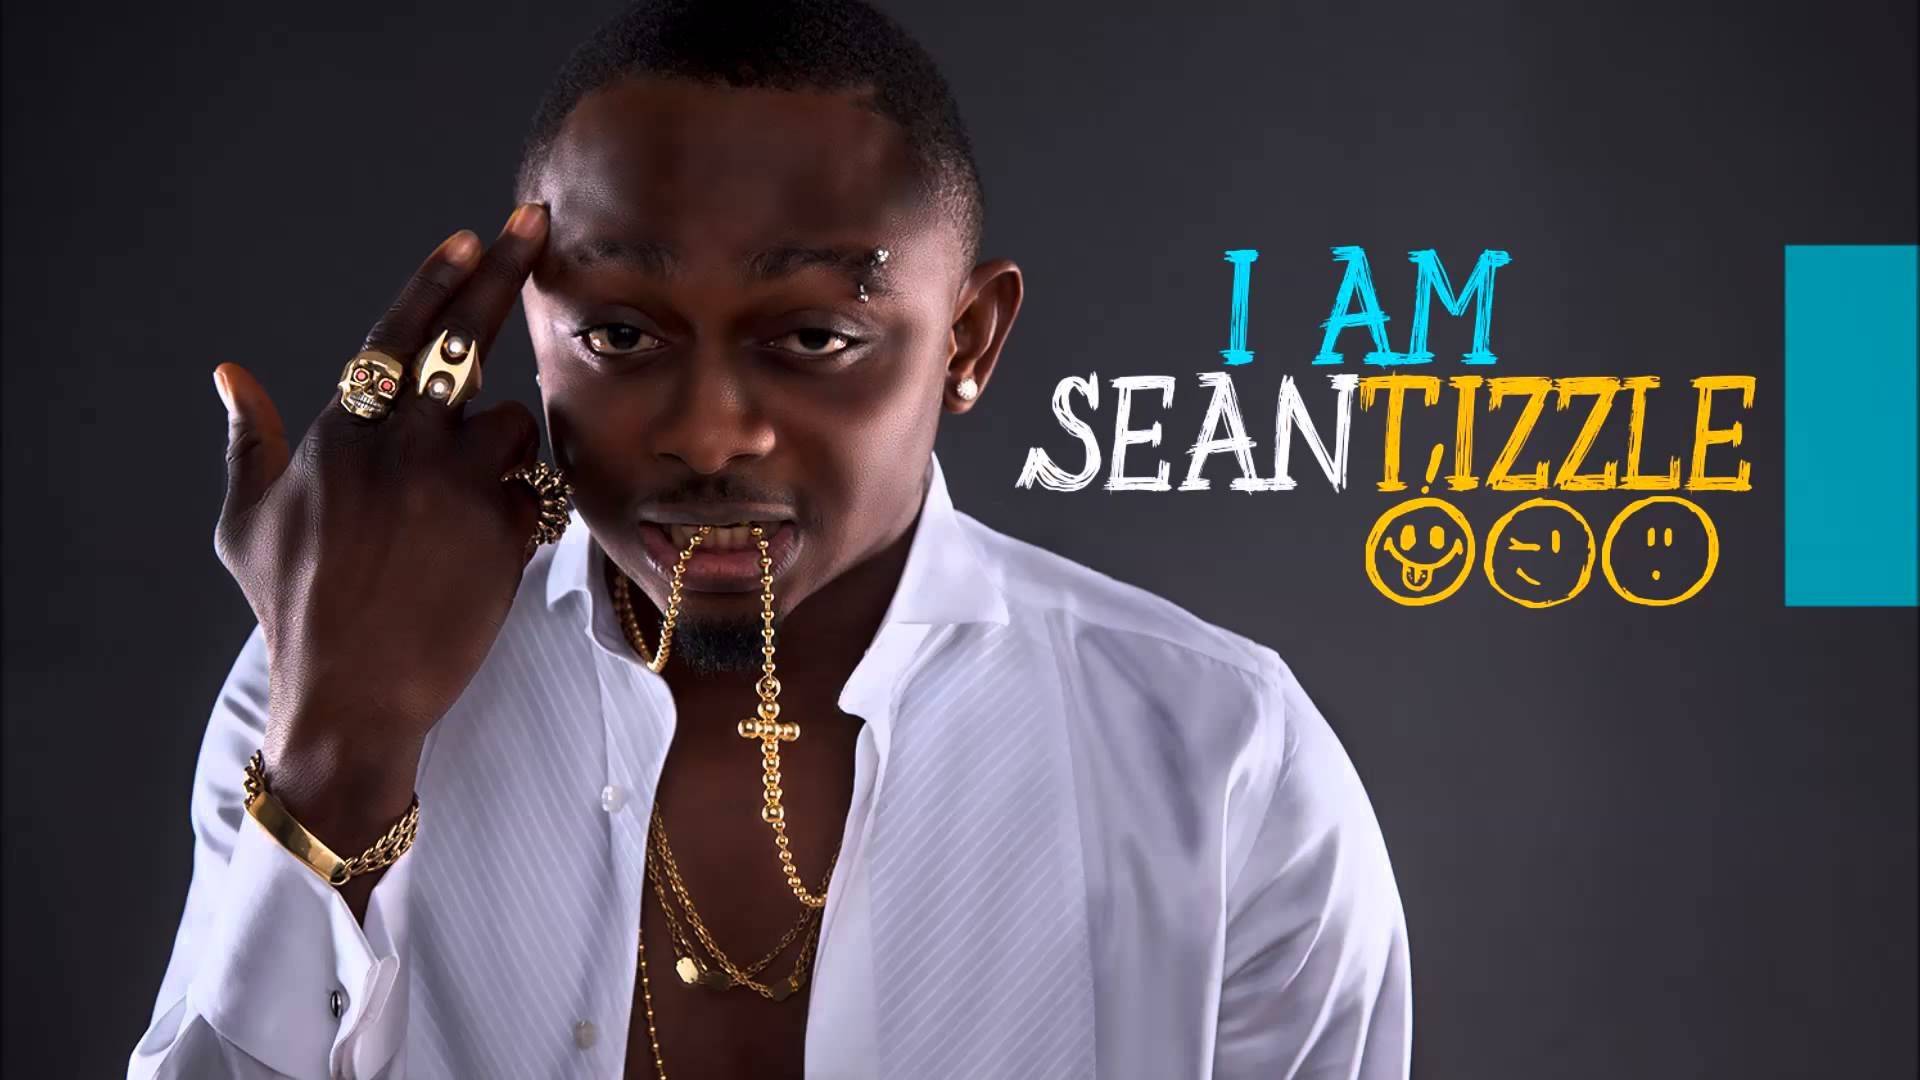 Following the release of his latest single titled 'Best